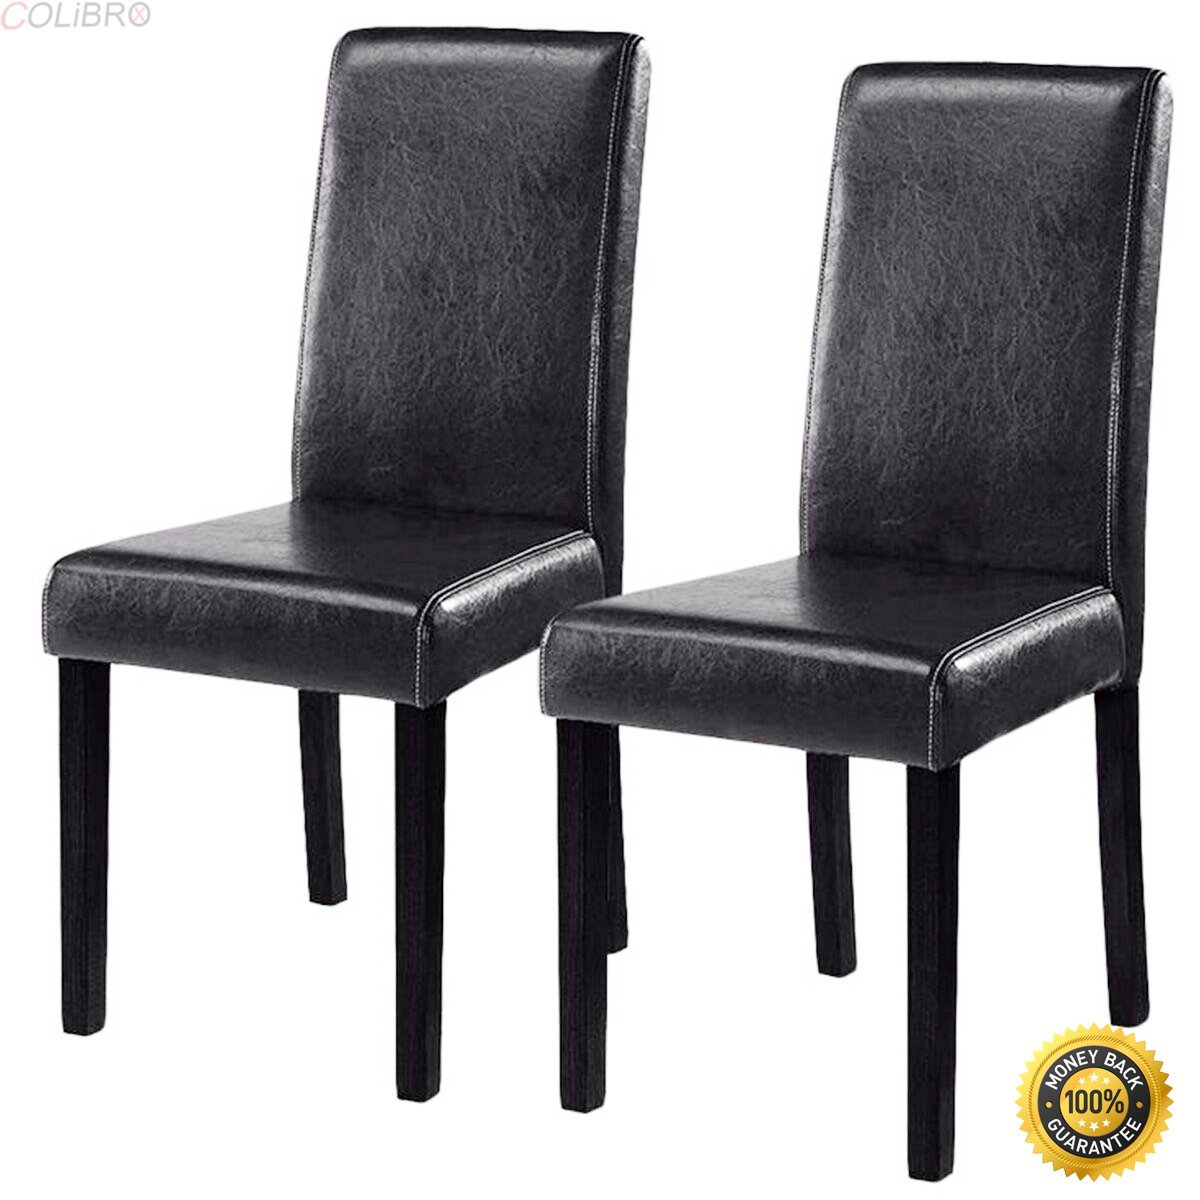 Get Quotations Colibrox Set Of 2 Black Elegant Design Leather Contemporary Dining Chairs Home Room